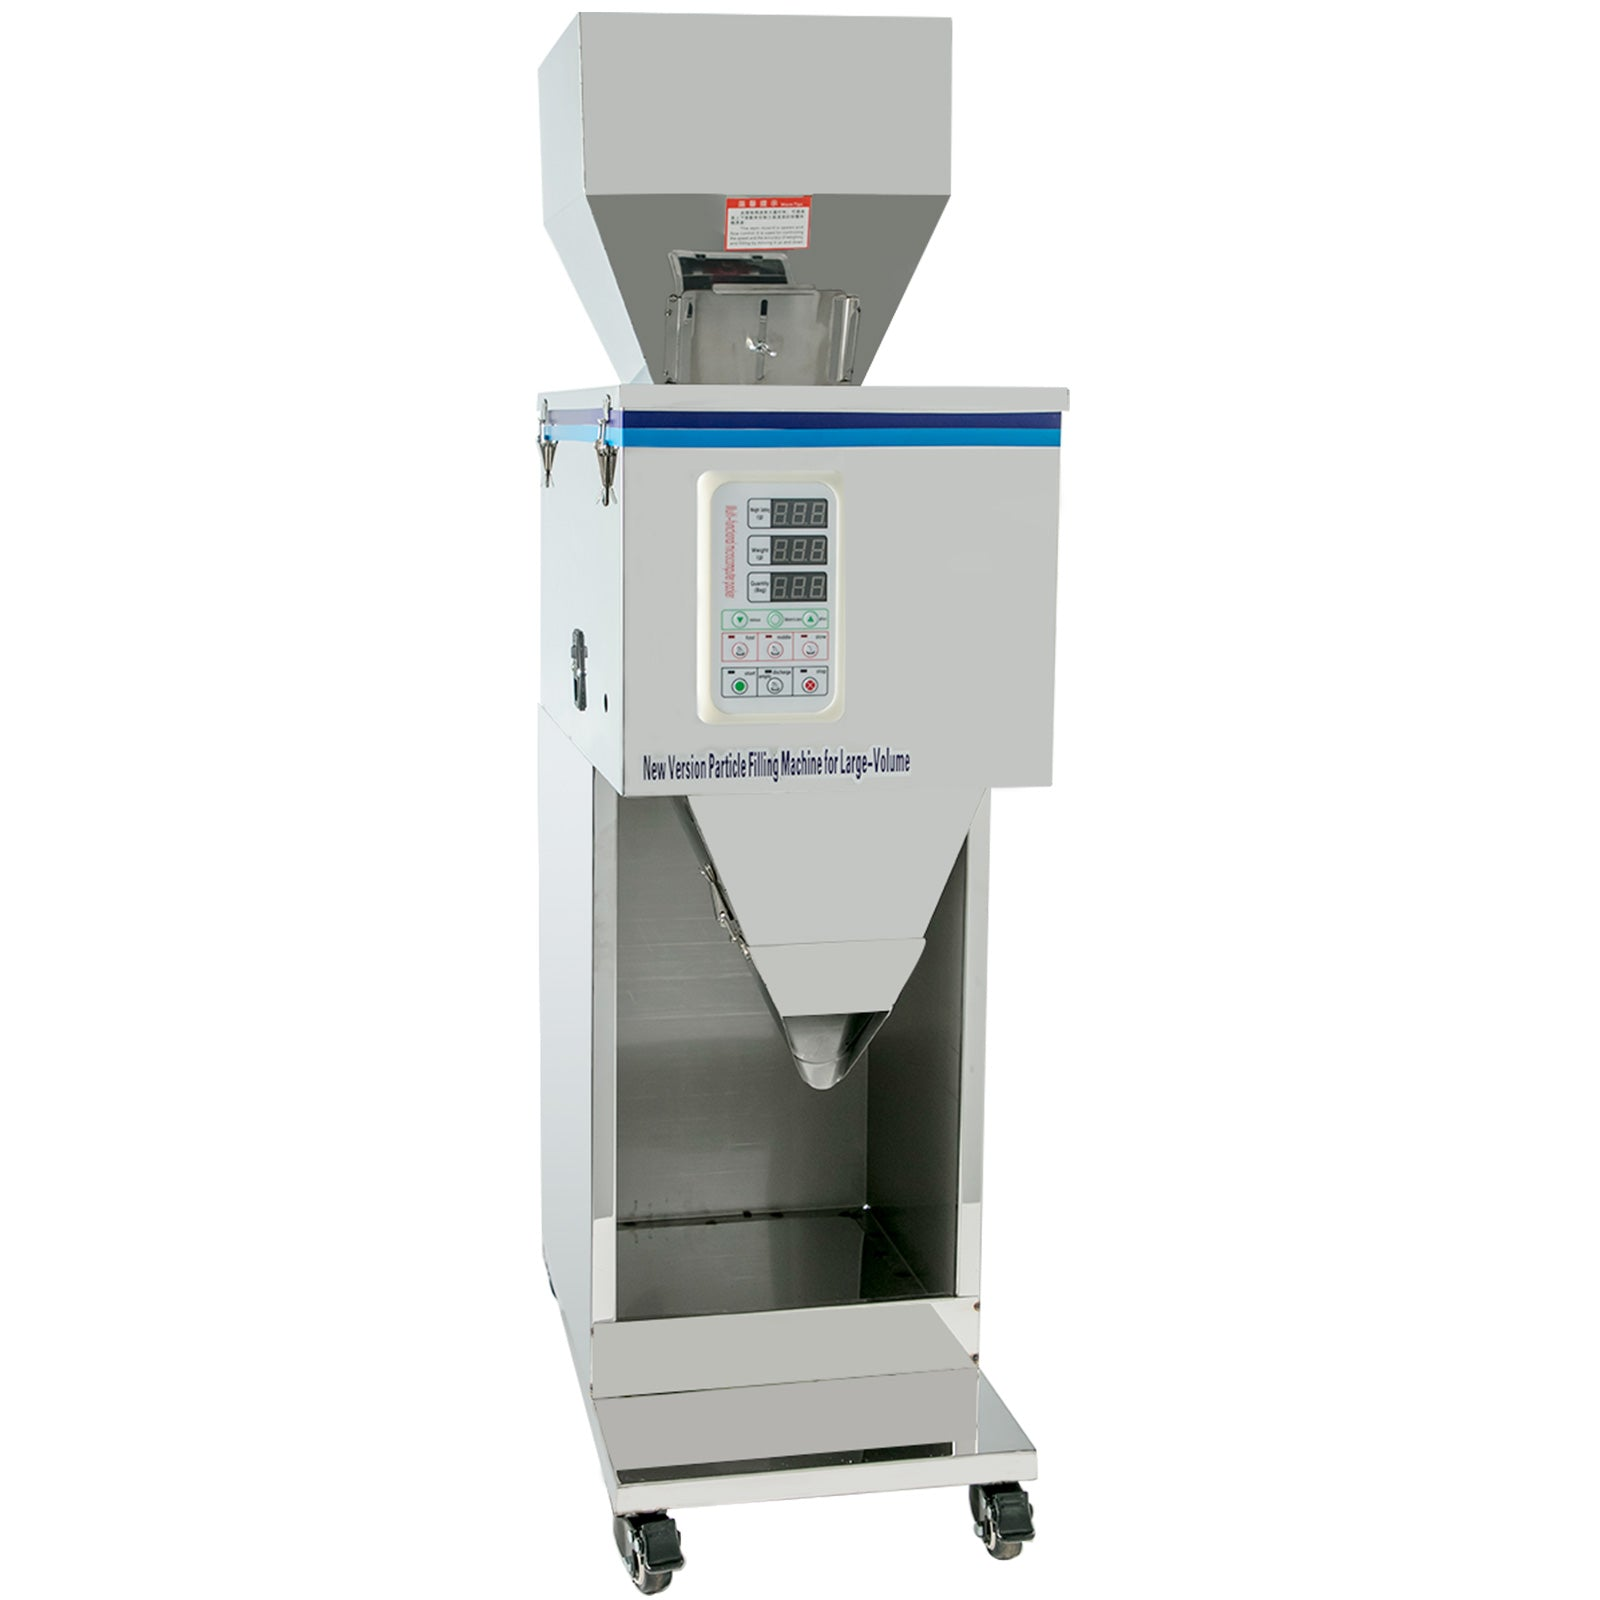 10-999g Particle Powder Filling Machine Volume Grains Seeds 5-25kg Hopper